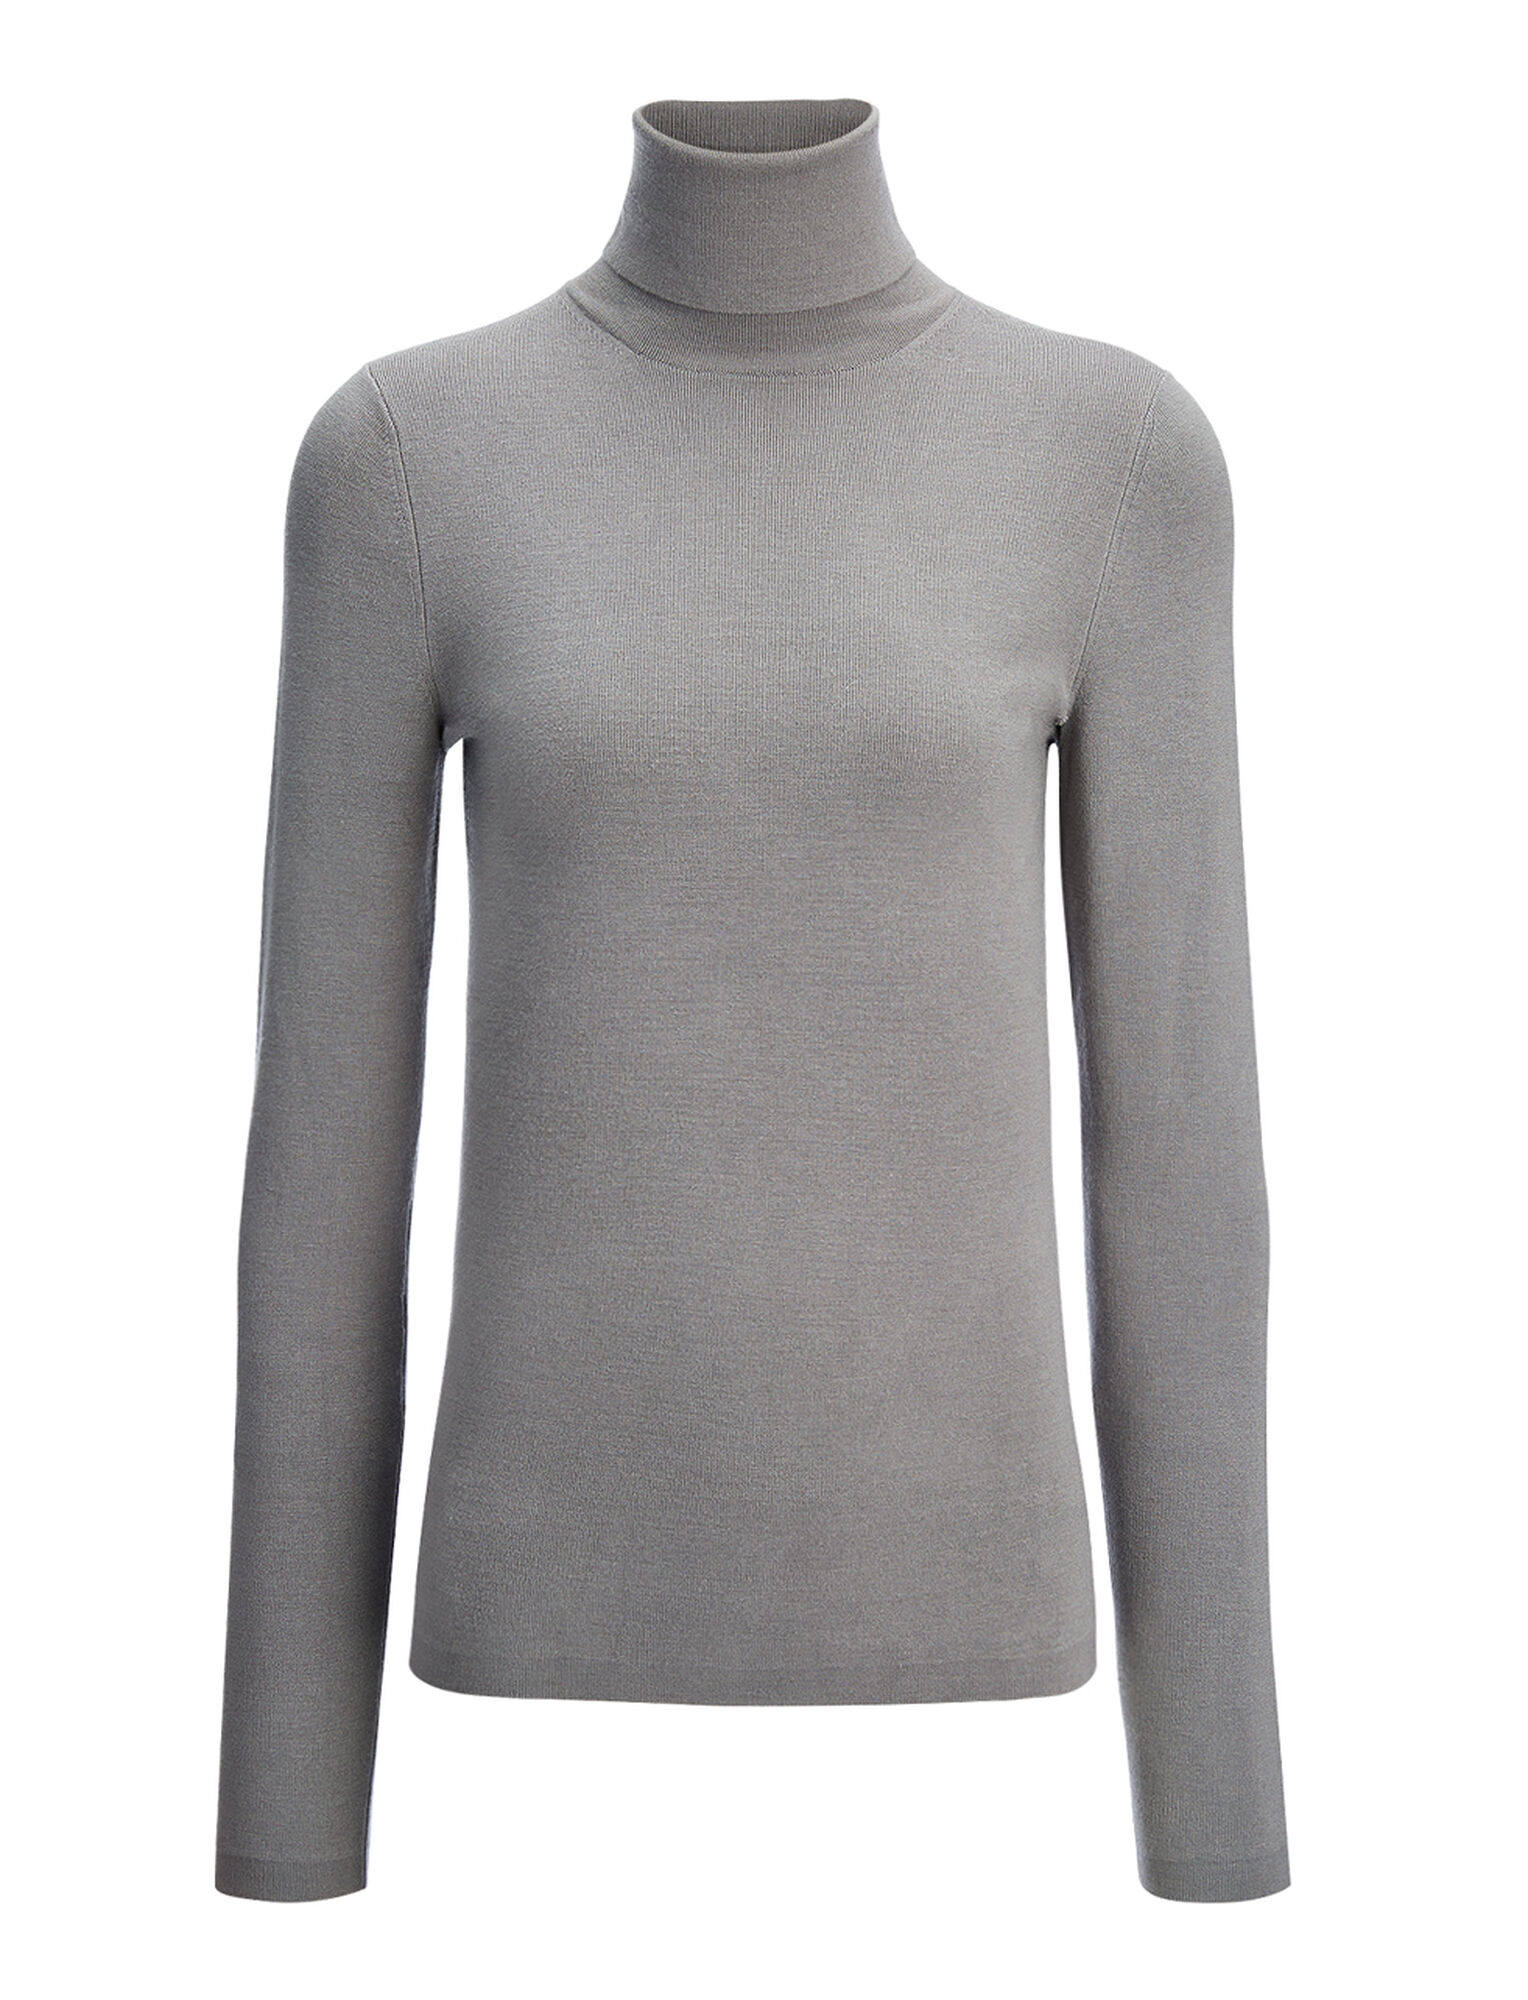 Joseph, Silk Stretch Roll Neck, in MARBLE